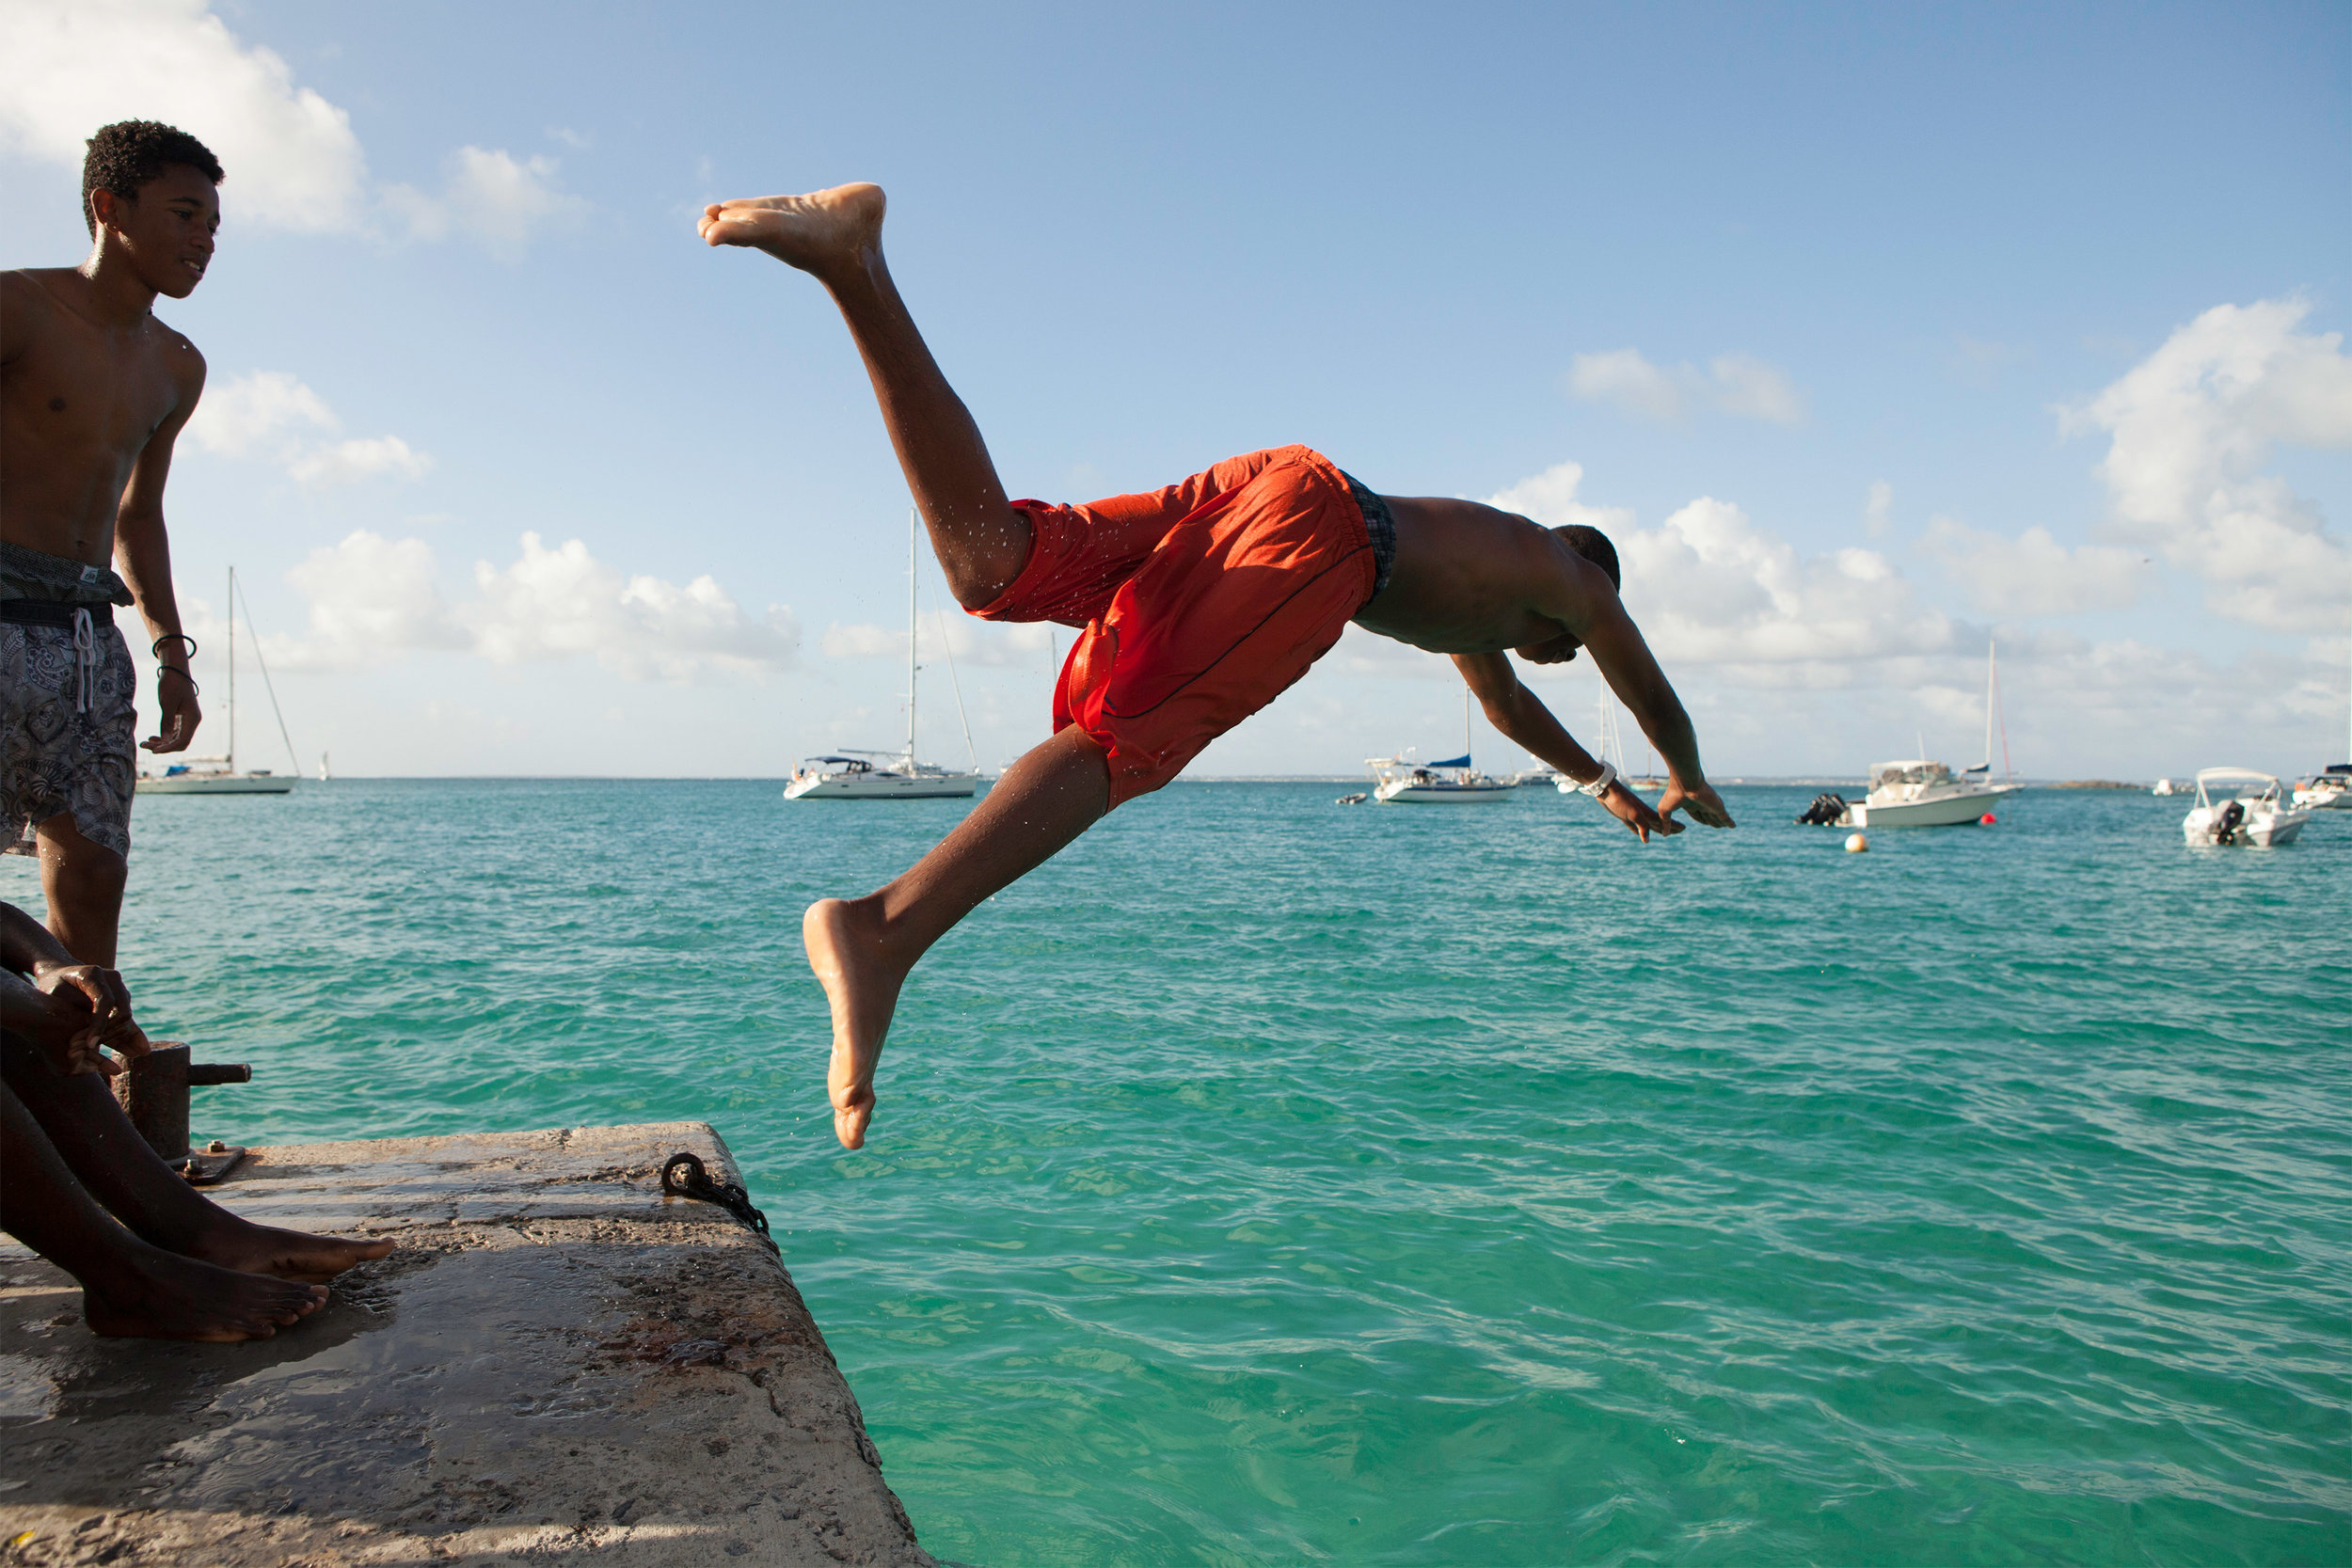 st_barts_carribean_boys_jumping_into_ocean_IMG_3982_retouched.jpg